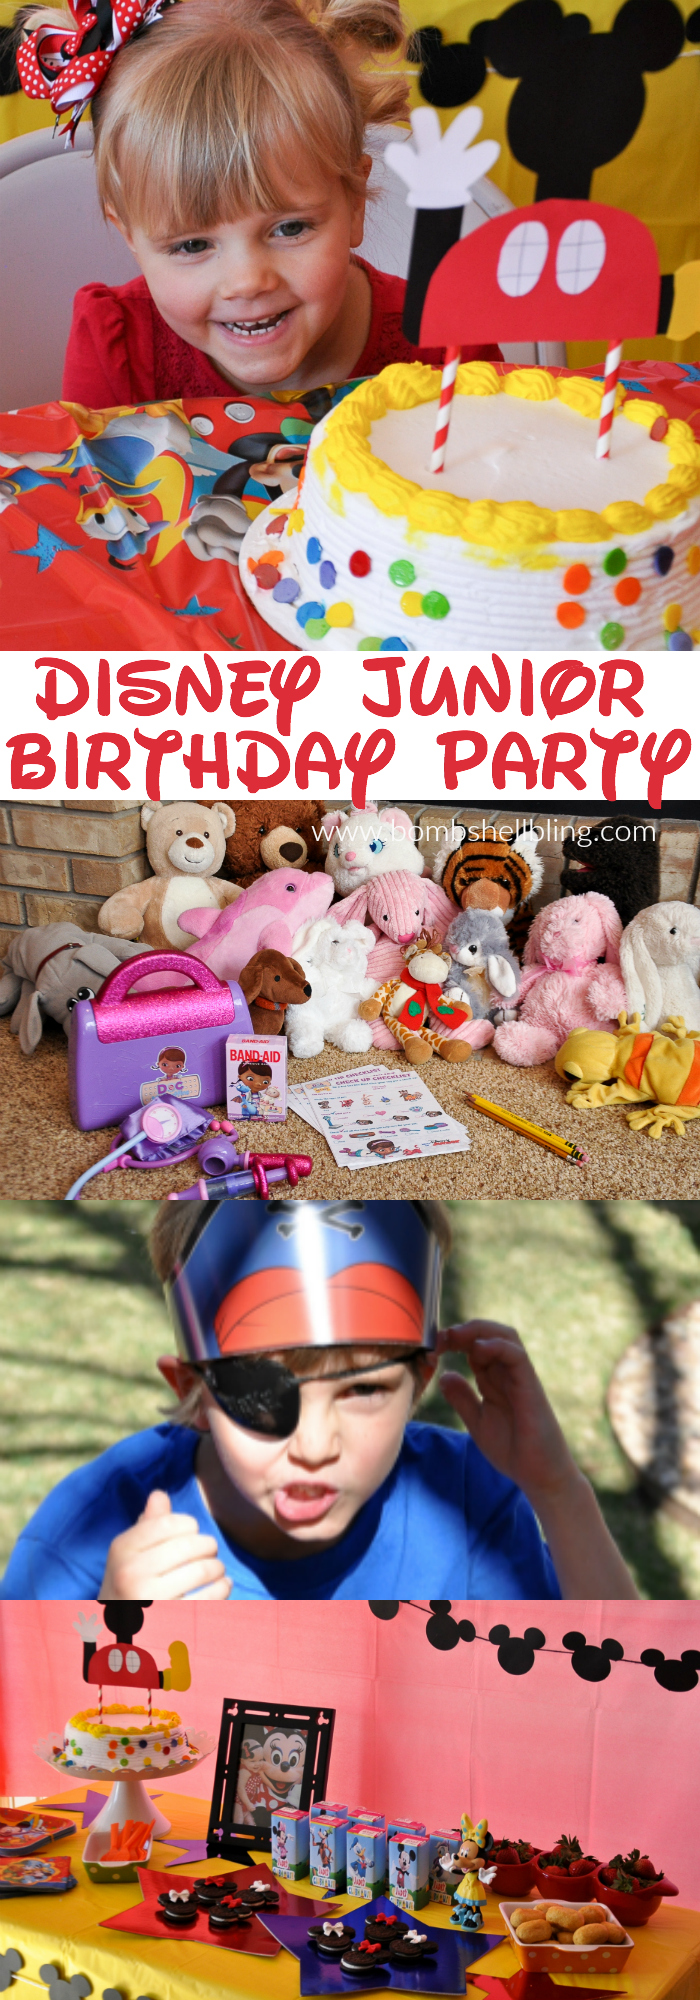 Disney Junior Birthday Party pin collage